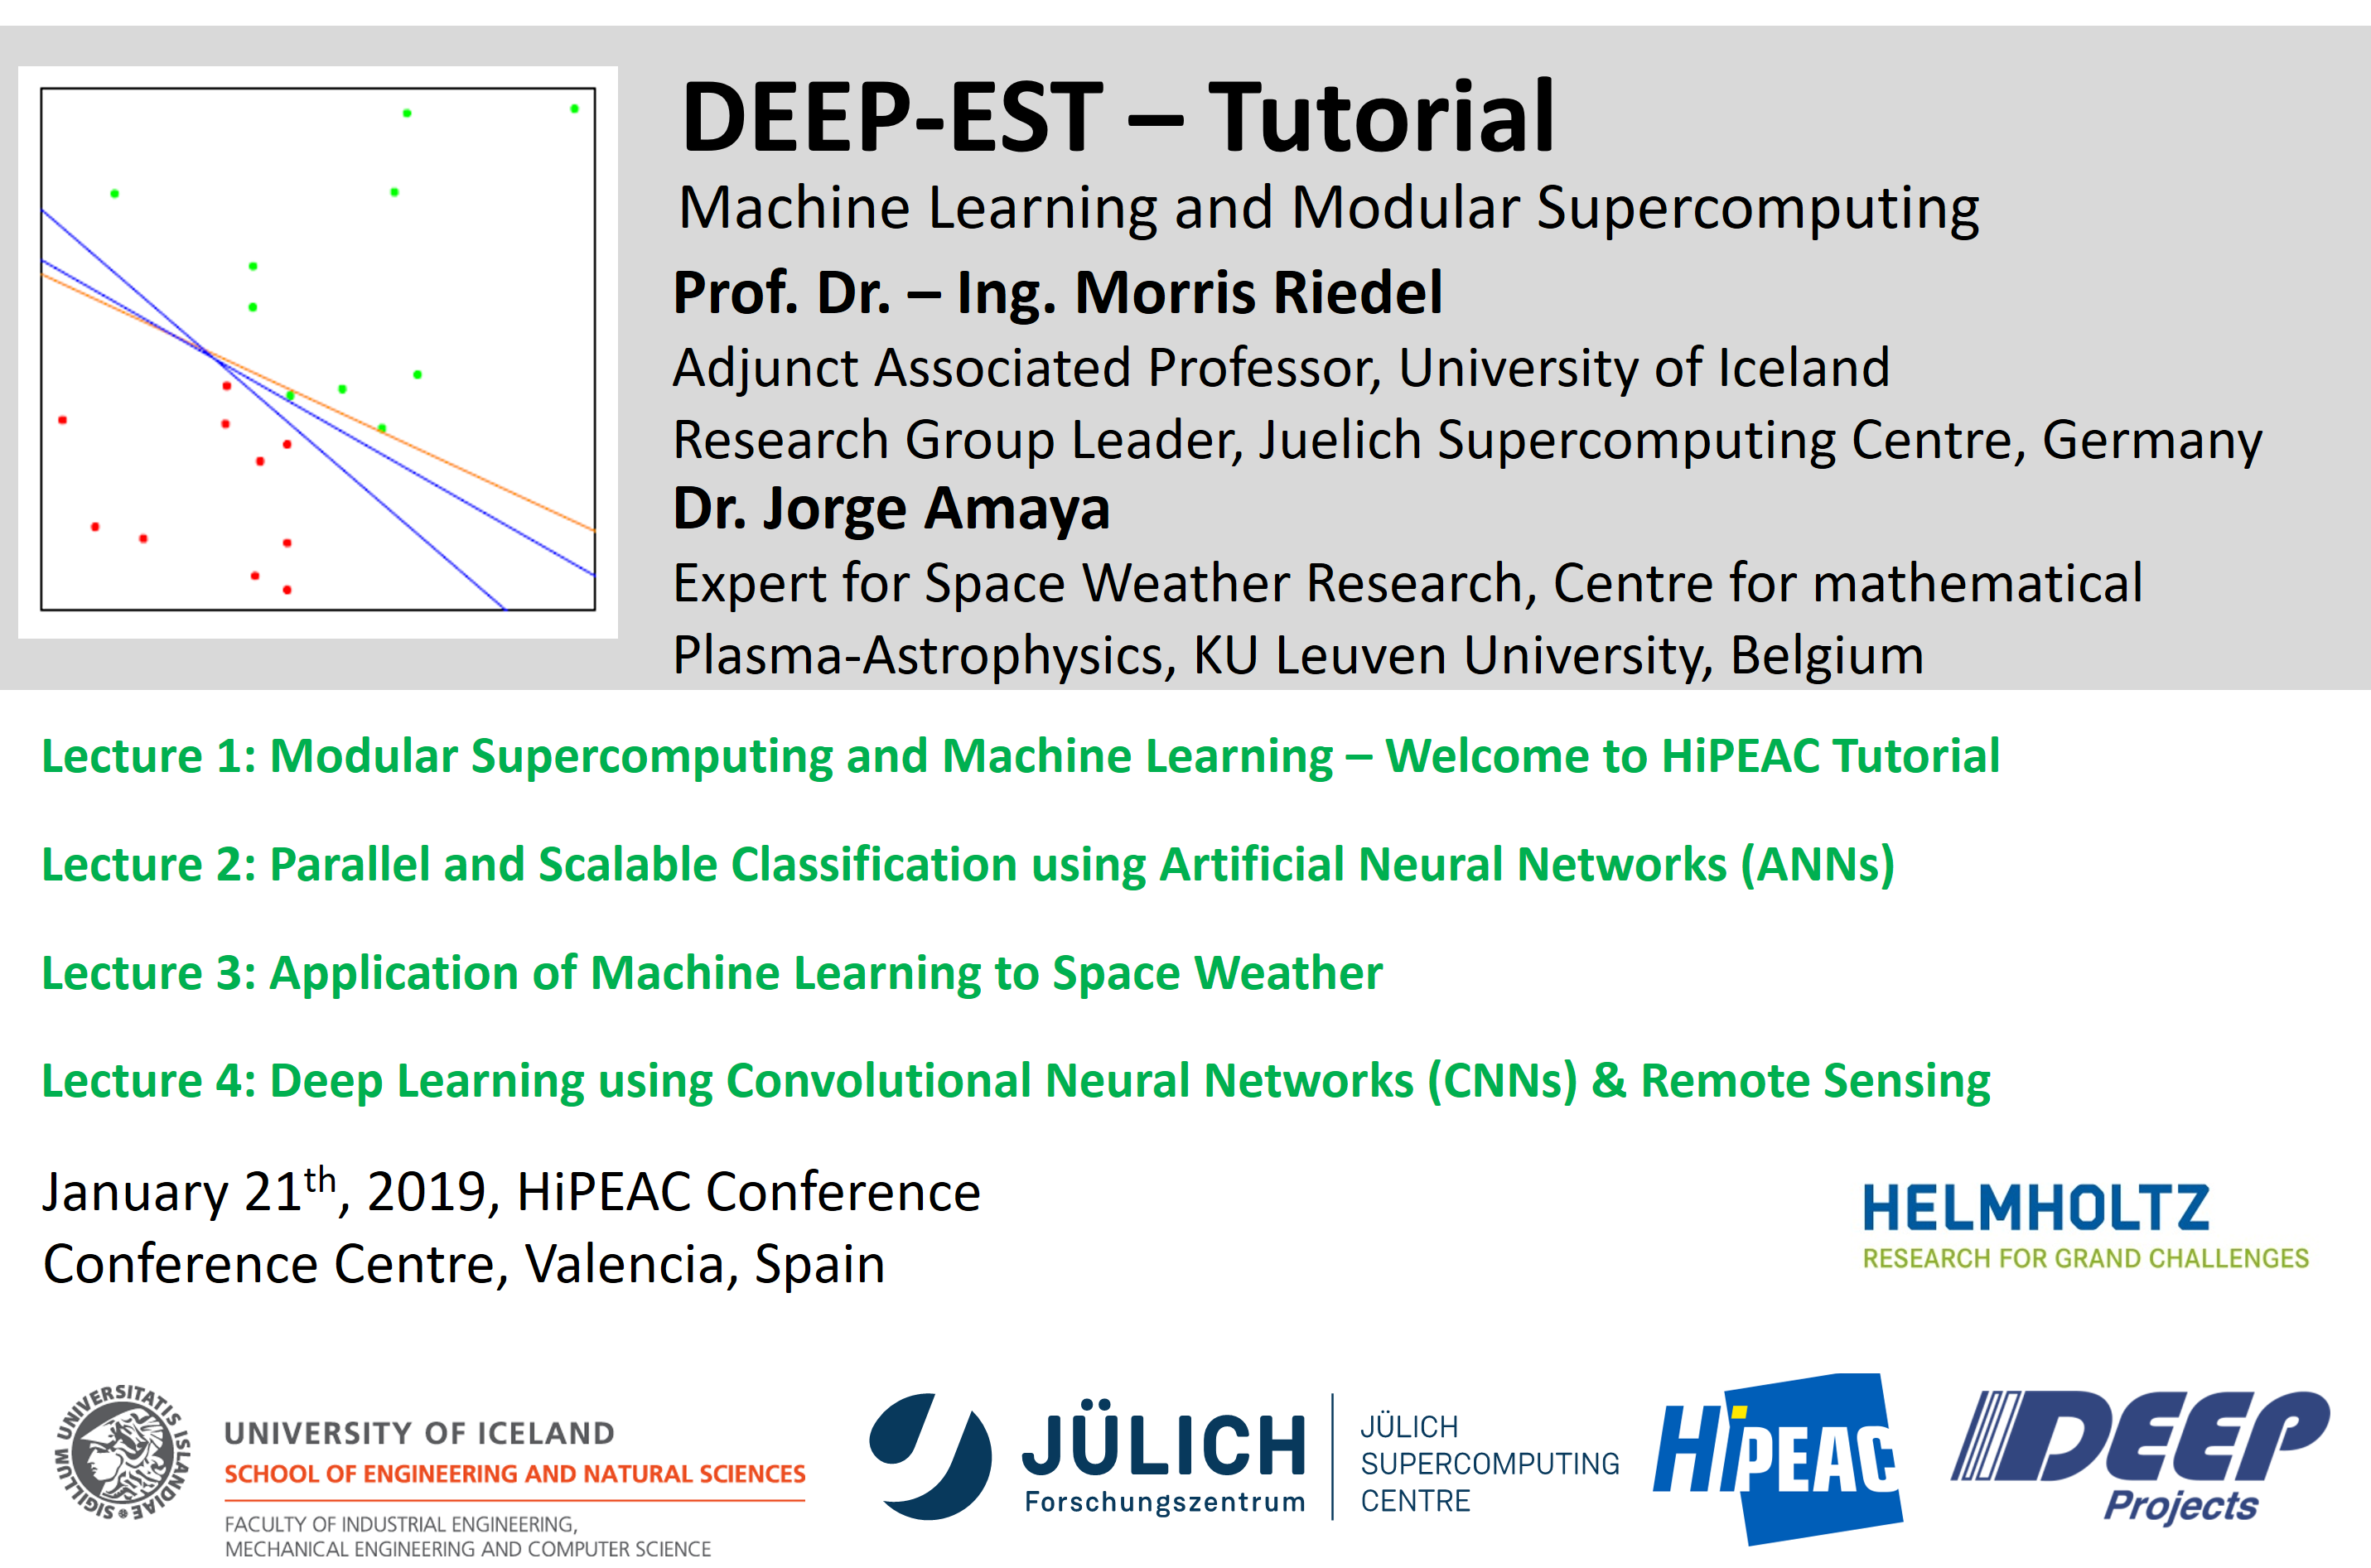 DEEP-EST Tutorial - Machine Learning and Modular Supercomputing